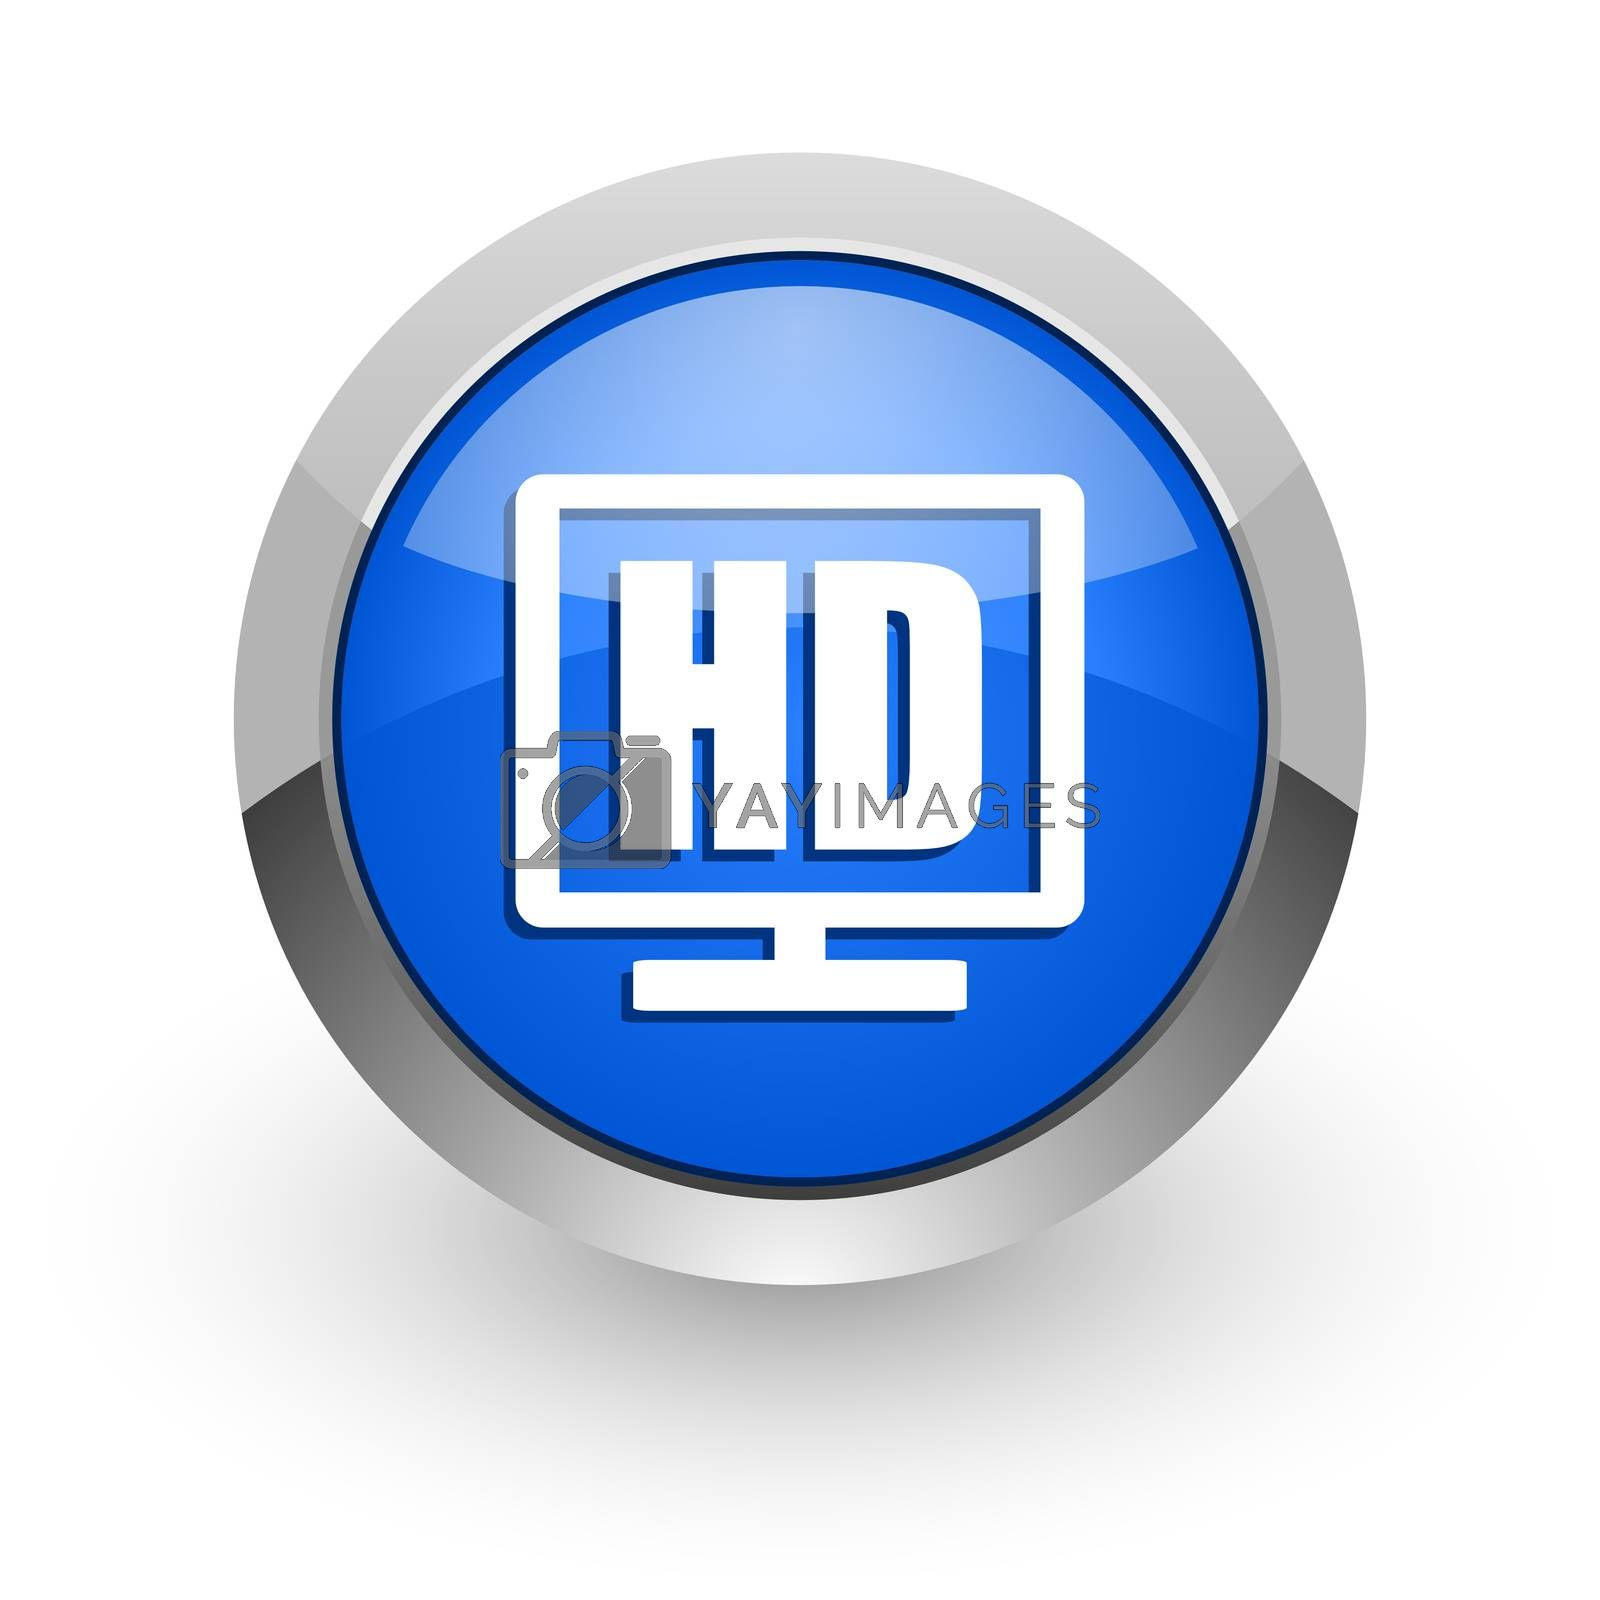 Royalty free image of hd display blue glossy web icon by alexwhite